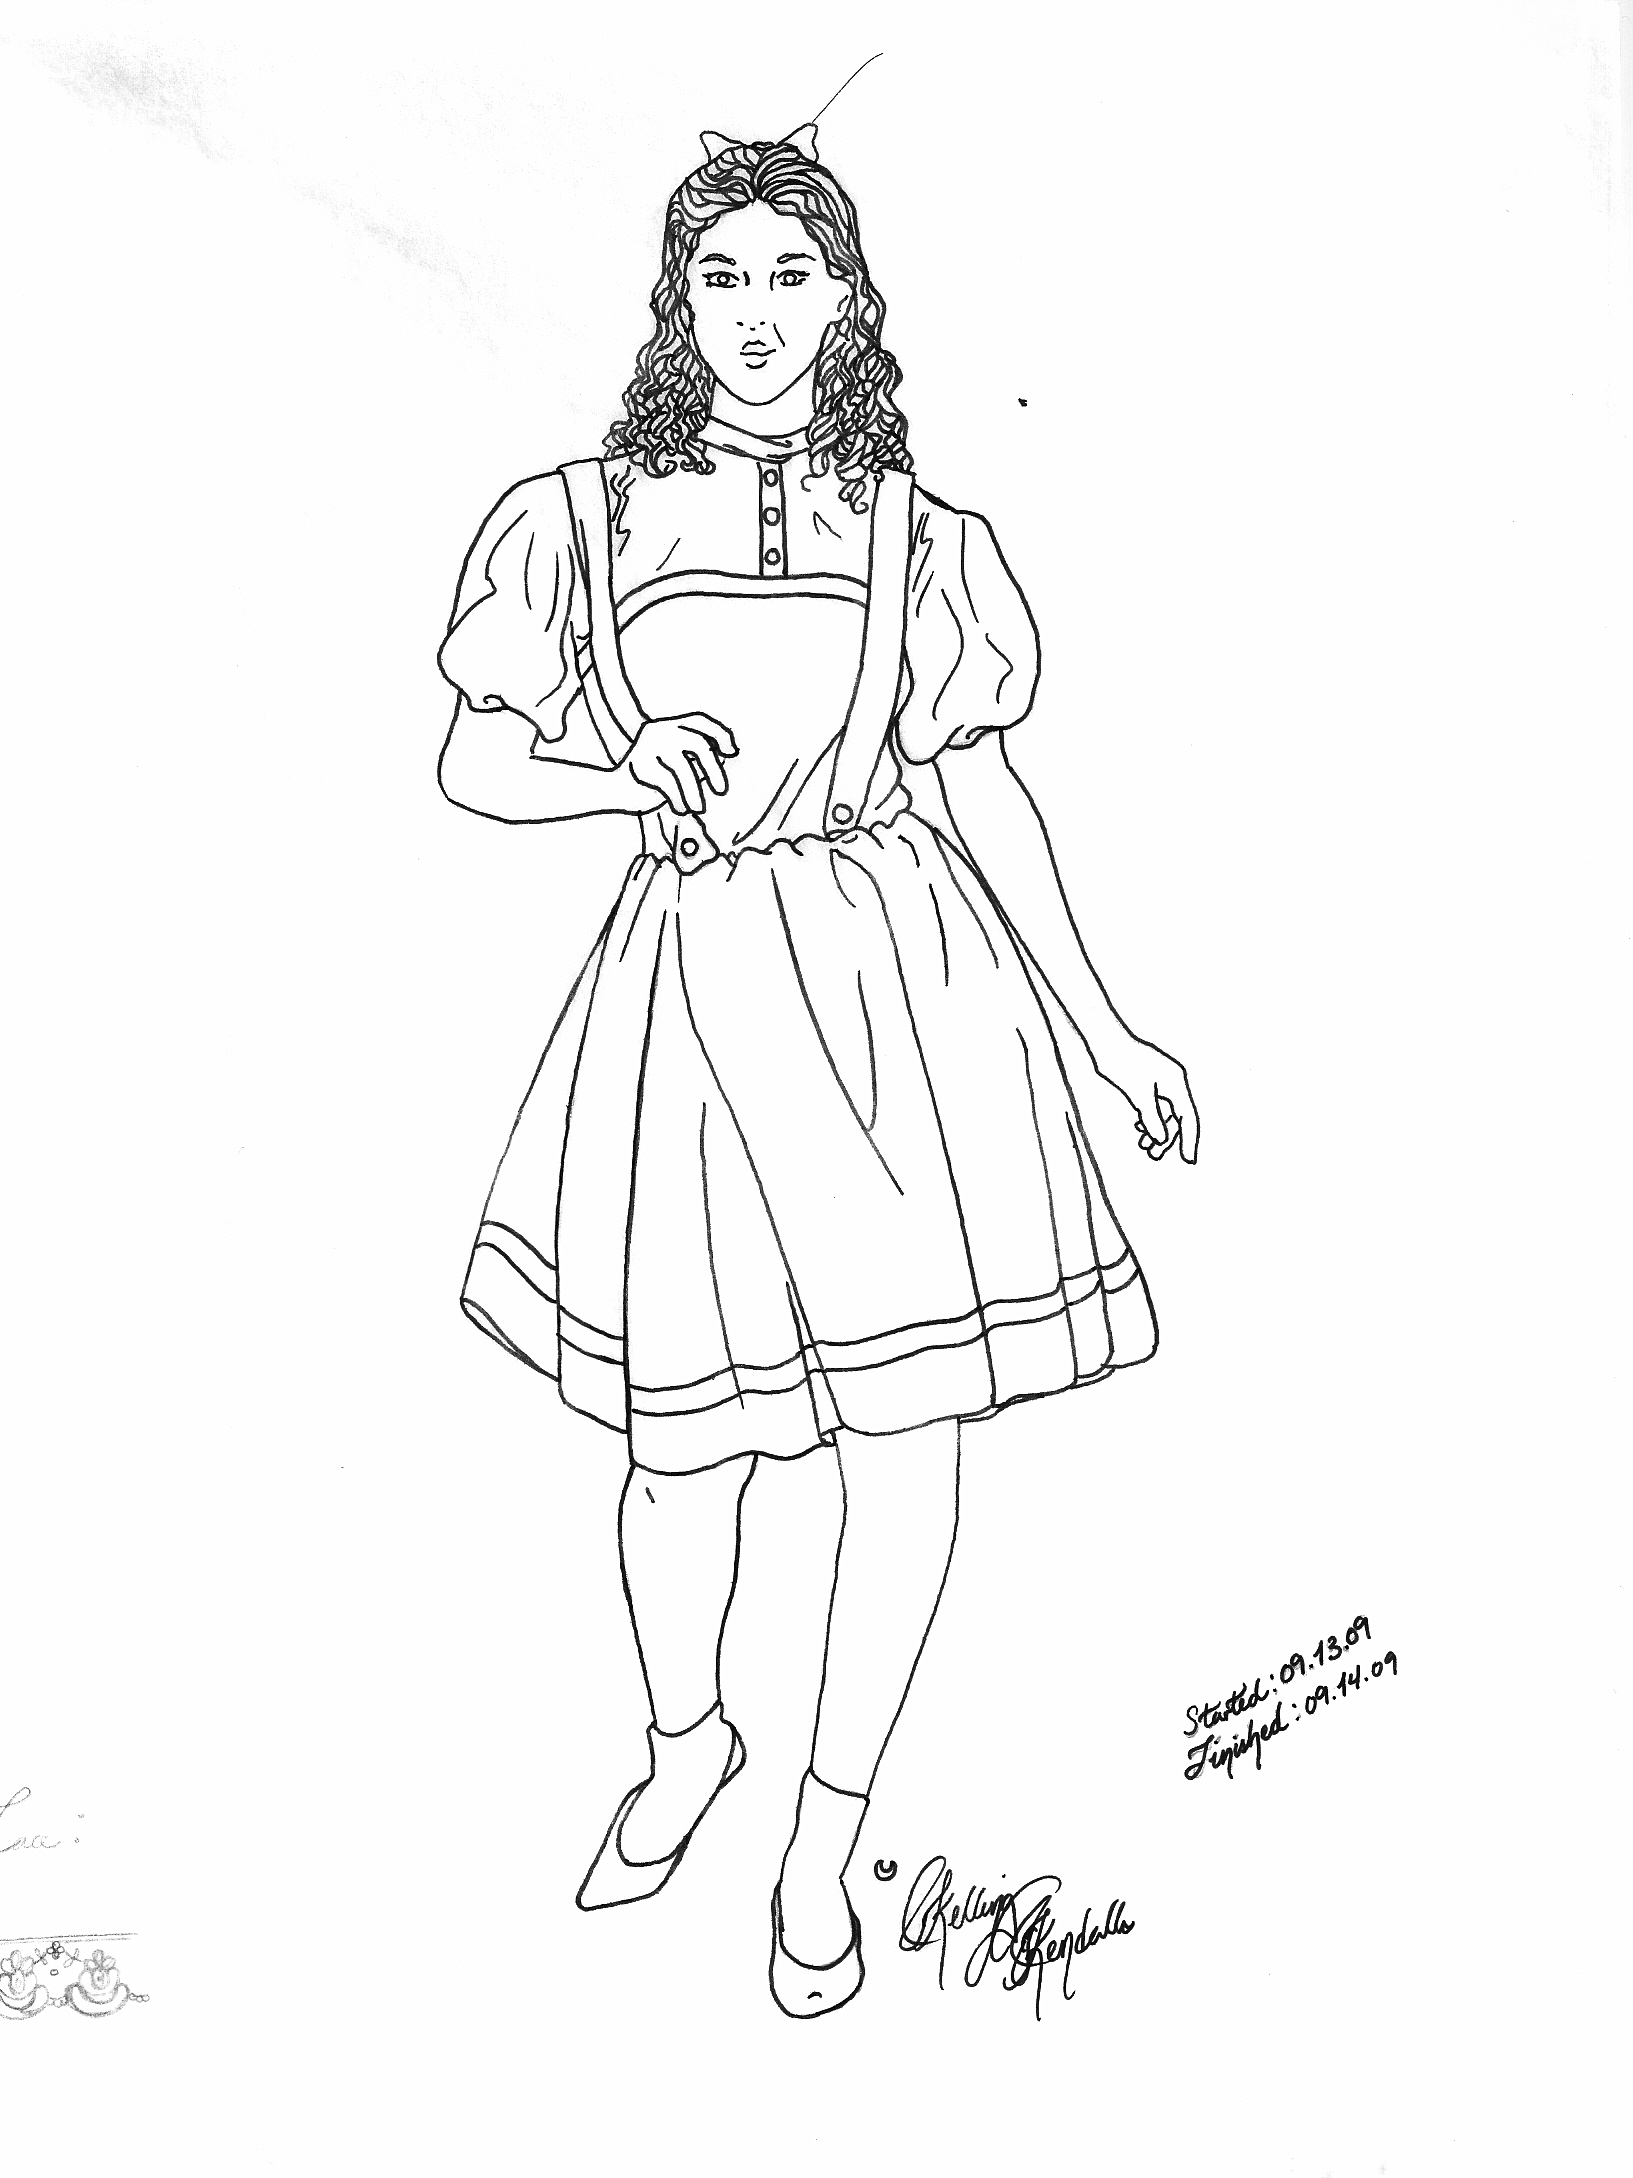 toto coloring pages - photo#35